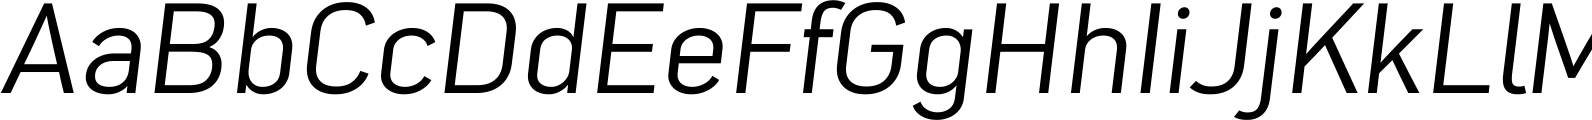 Nota Normal Oblique Font